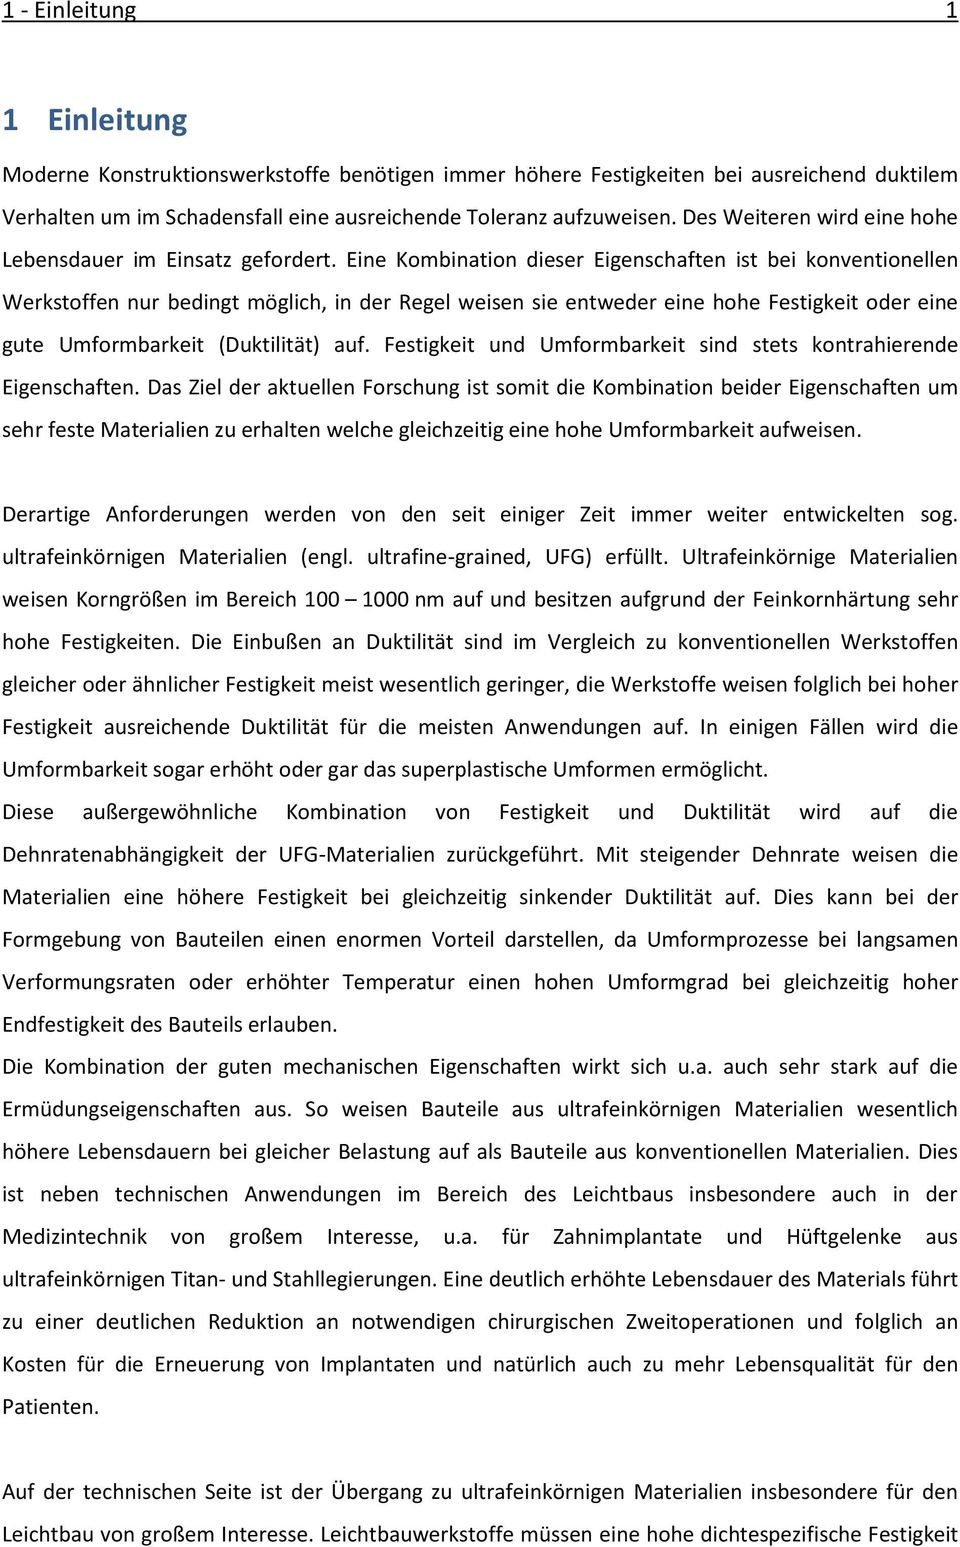 kumulierte dissertation Kumulierte dissertation marketing career essay limitations of library based research paper congratulations to @magdalenaszot, got 71% in her dissertation msc management consultancy and organisational change the case for torture persuasive essay sylvie bastajian ernest yessayan buy essay cheap holiday pastoriza research paper kristina brasseler.